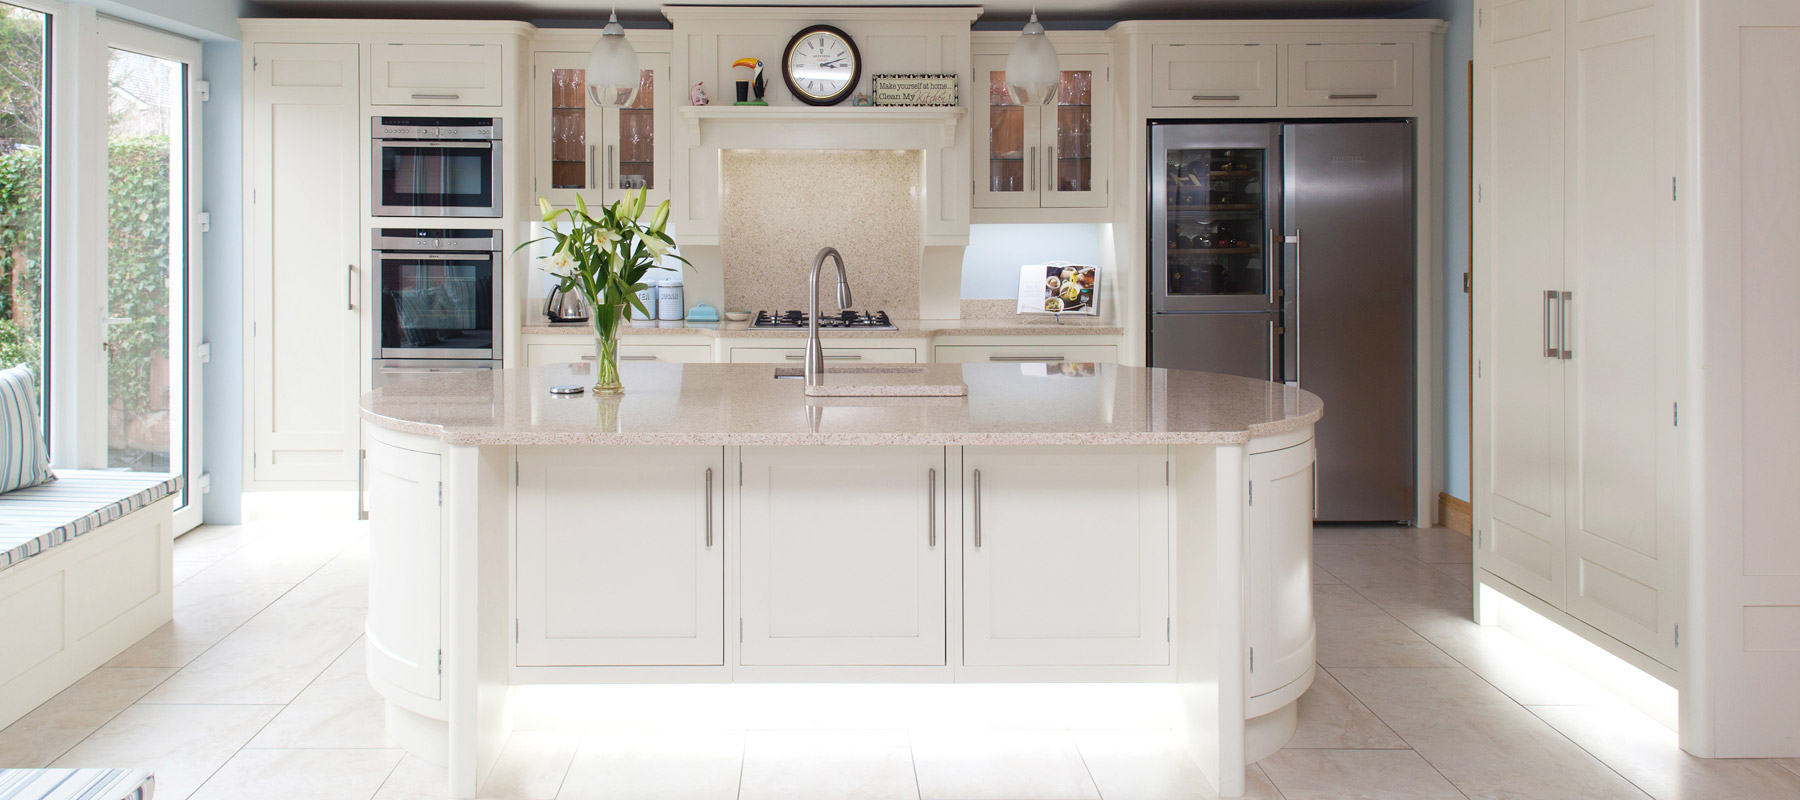 Painted kitchen in Naas, County Kildare